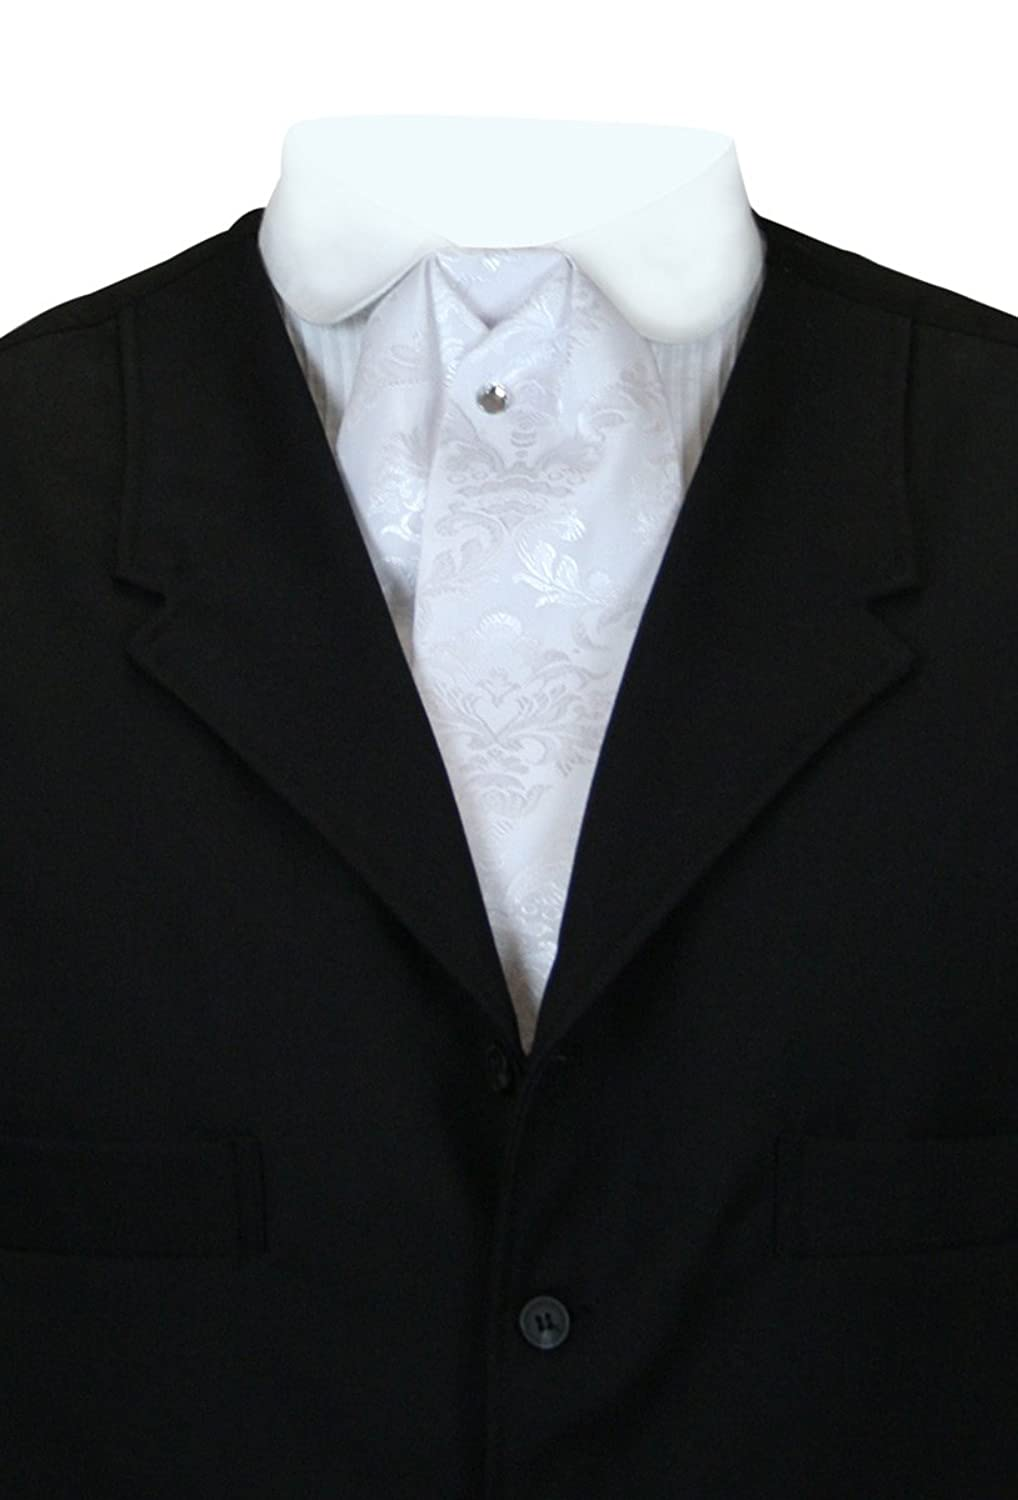 Edwardian Titanic Men's Formal Tuxedo Guide Historical Emporium Mens Satin Floral Puff Tie $25.95 AT vintagedancer.com